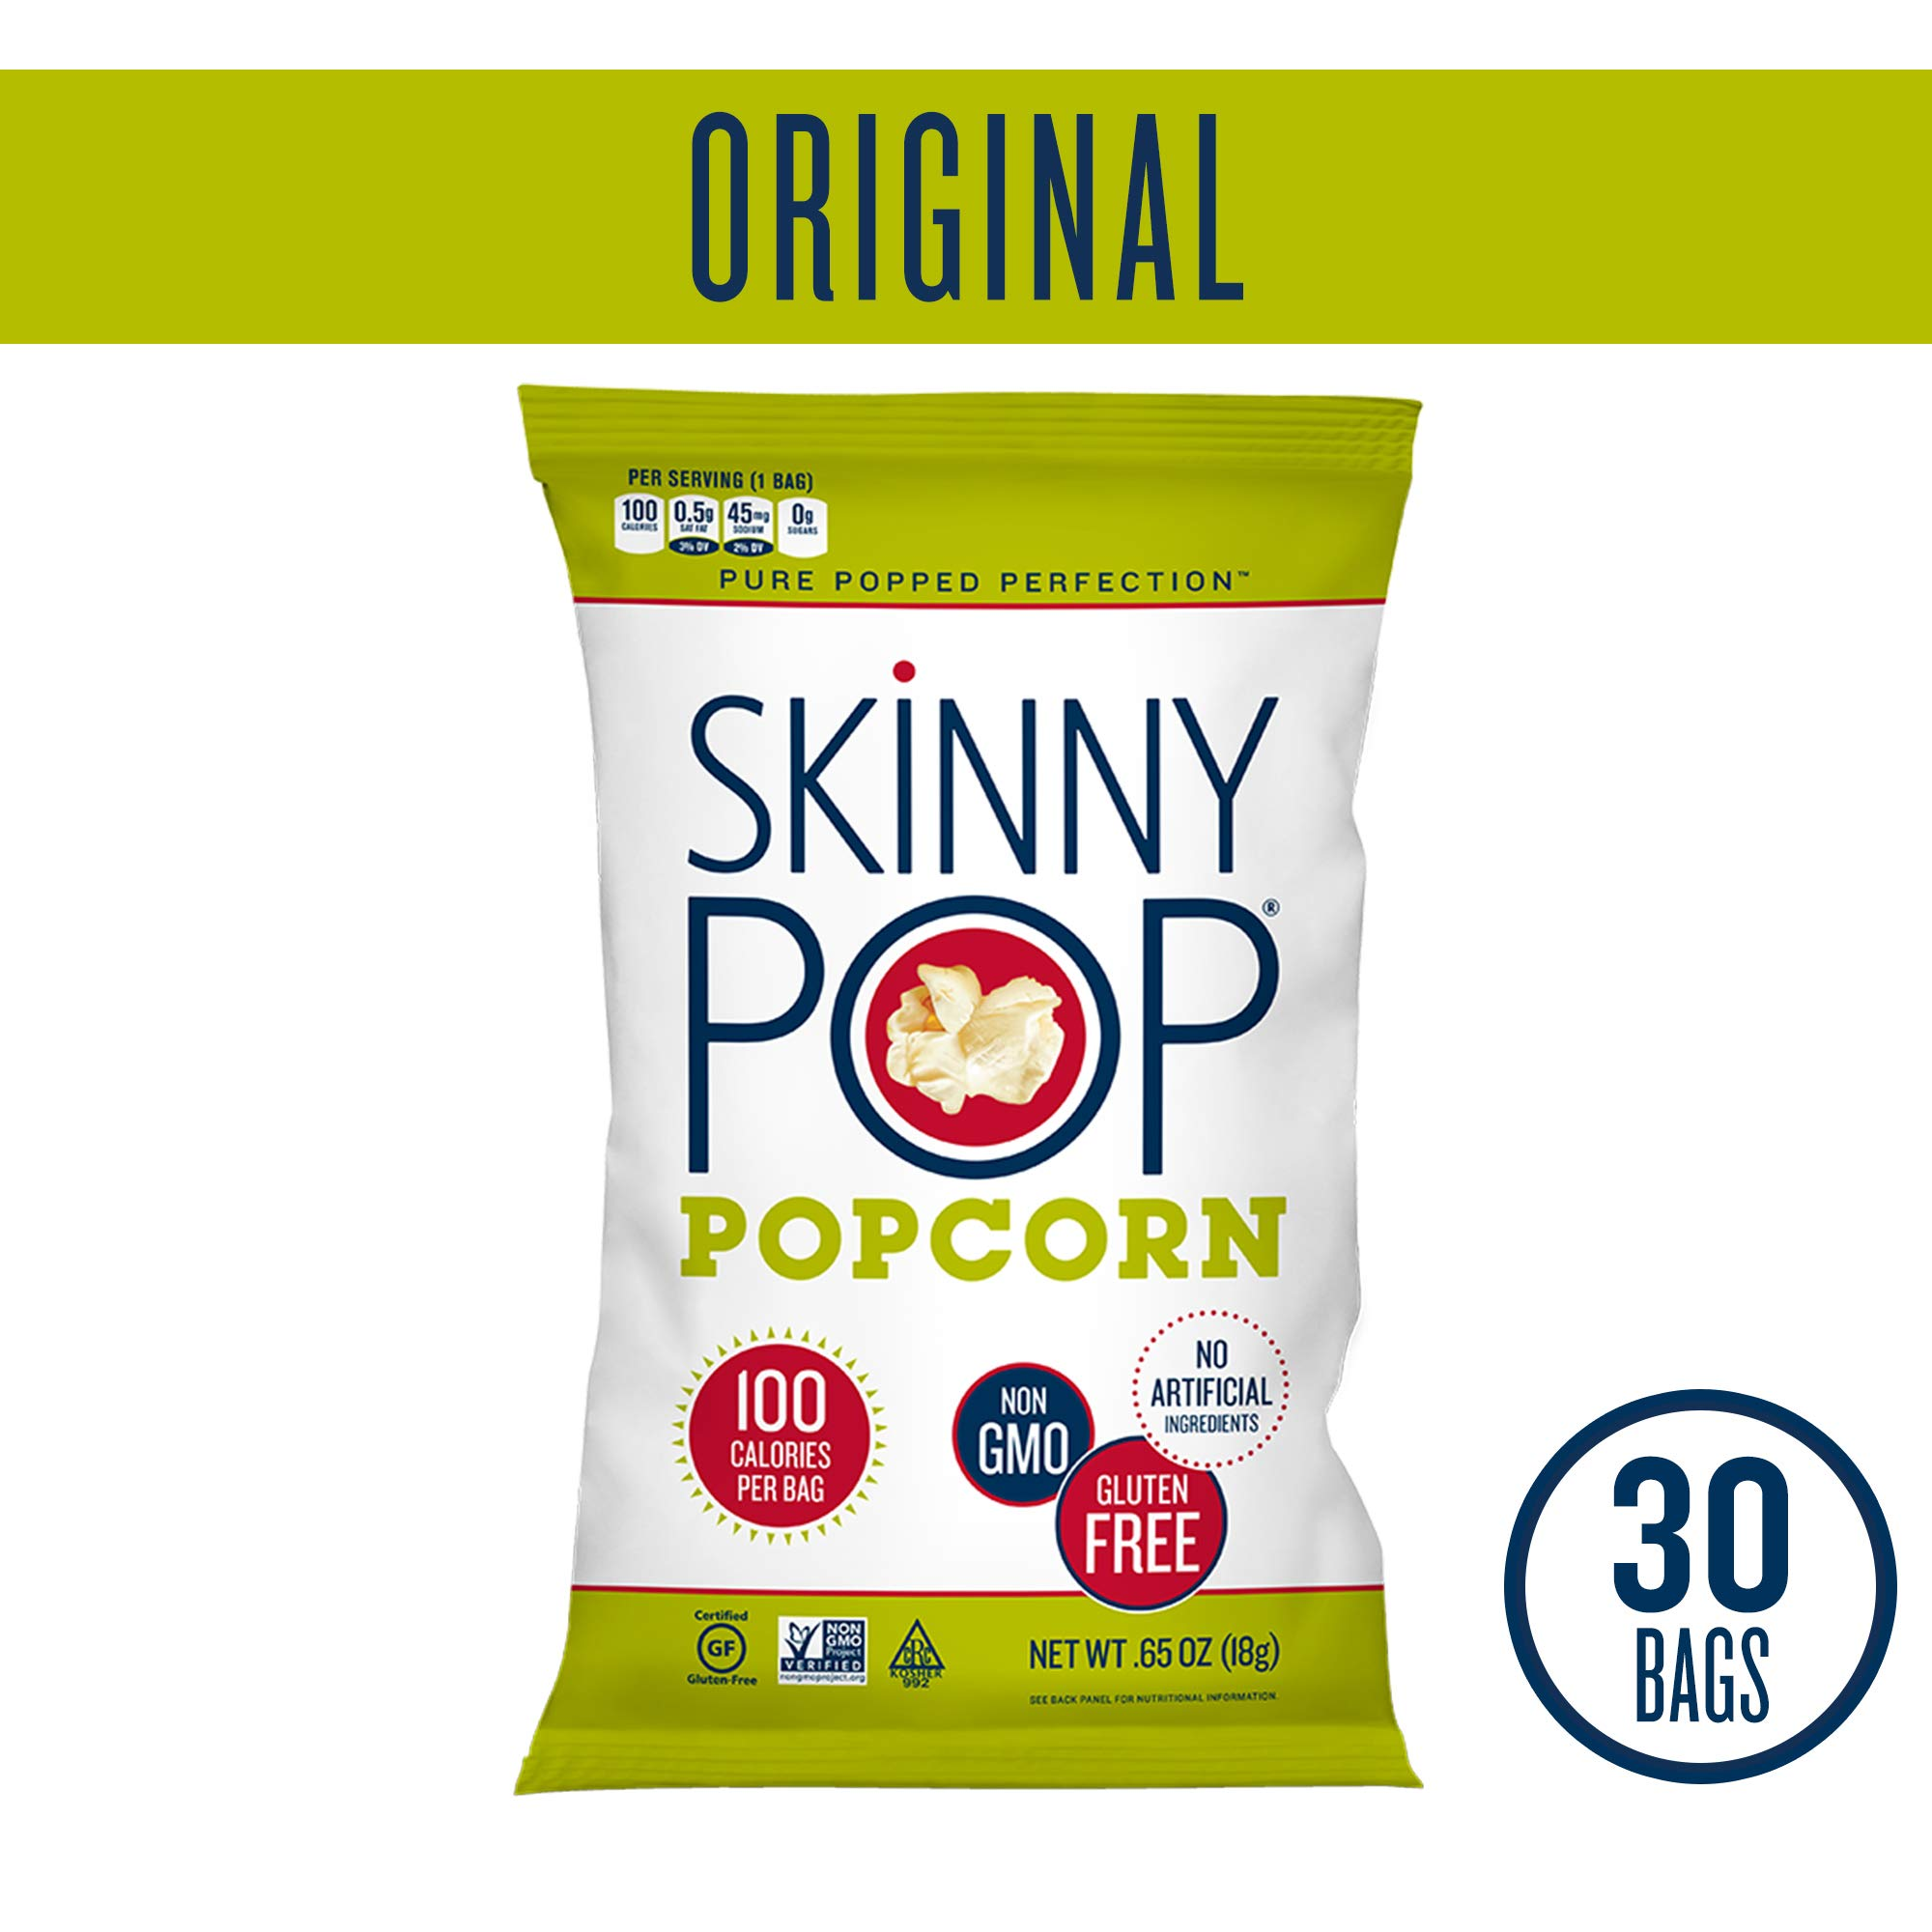 SKINNYPOP Original Popped Popcorn, 100 Calorie Bags, Individual Bags, Gluten Free Popcorn, Non-GMO, No Artificial Ingredients, A Delicious Source of Fiber, 0.65 Ounce (Pack of 30) by SkinnyPop